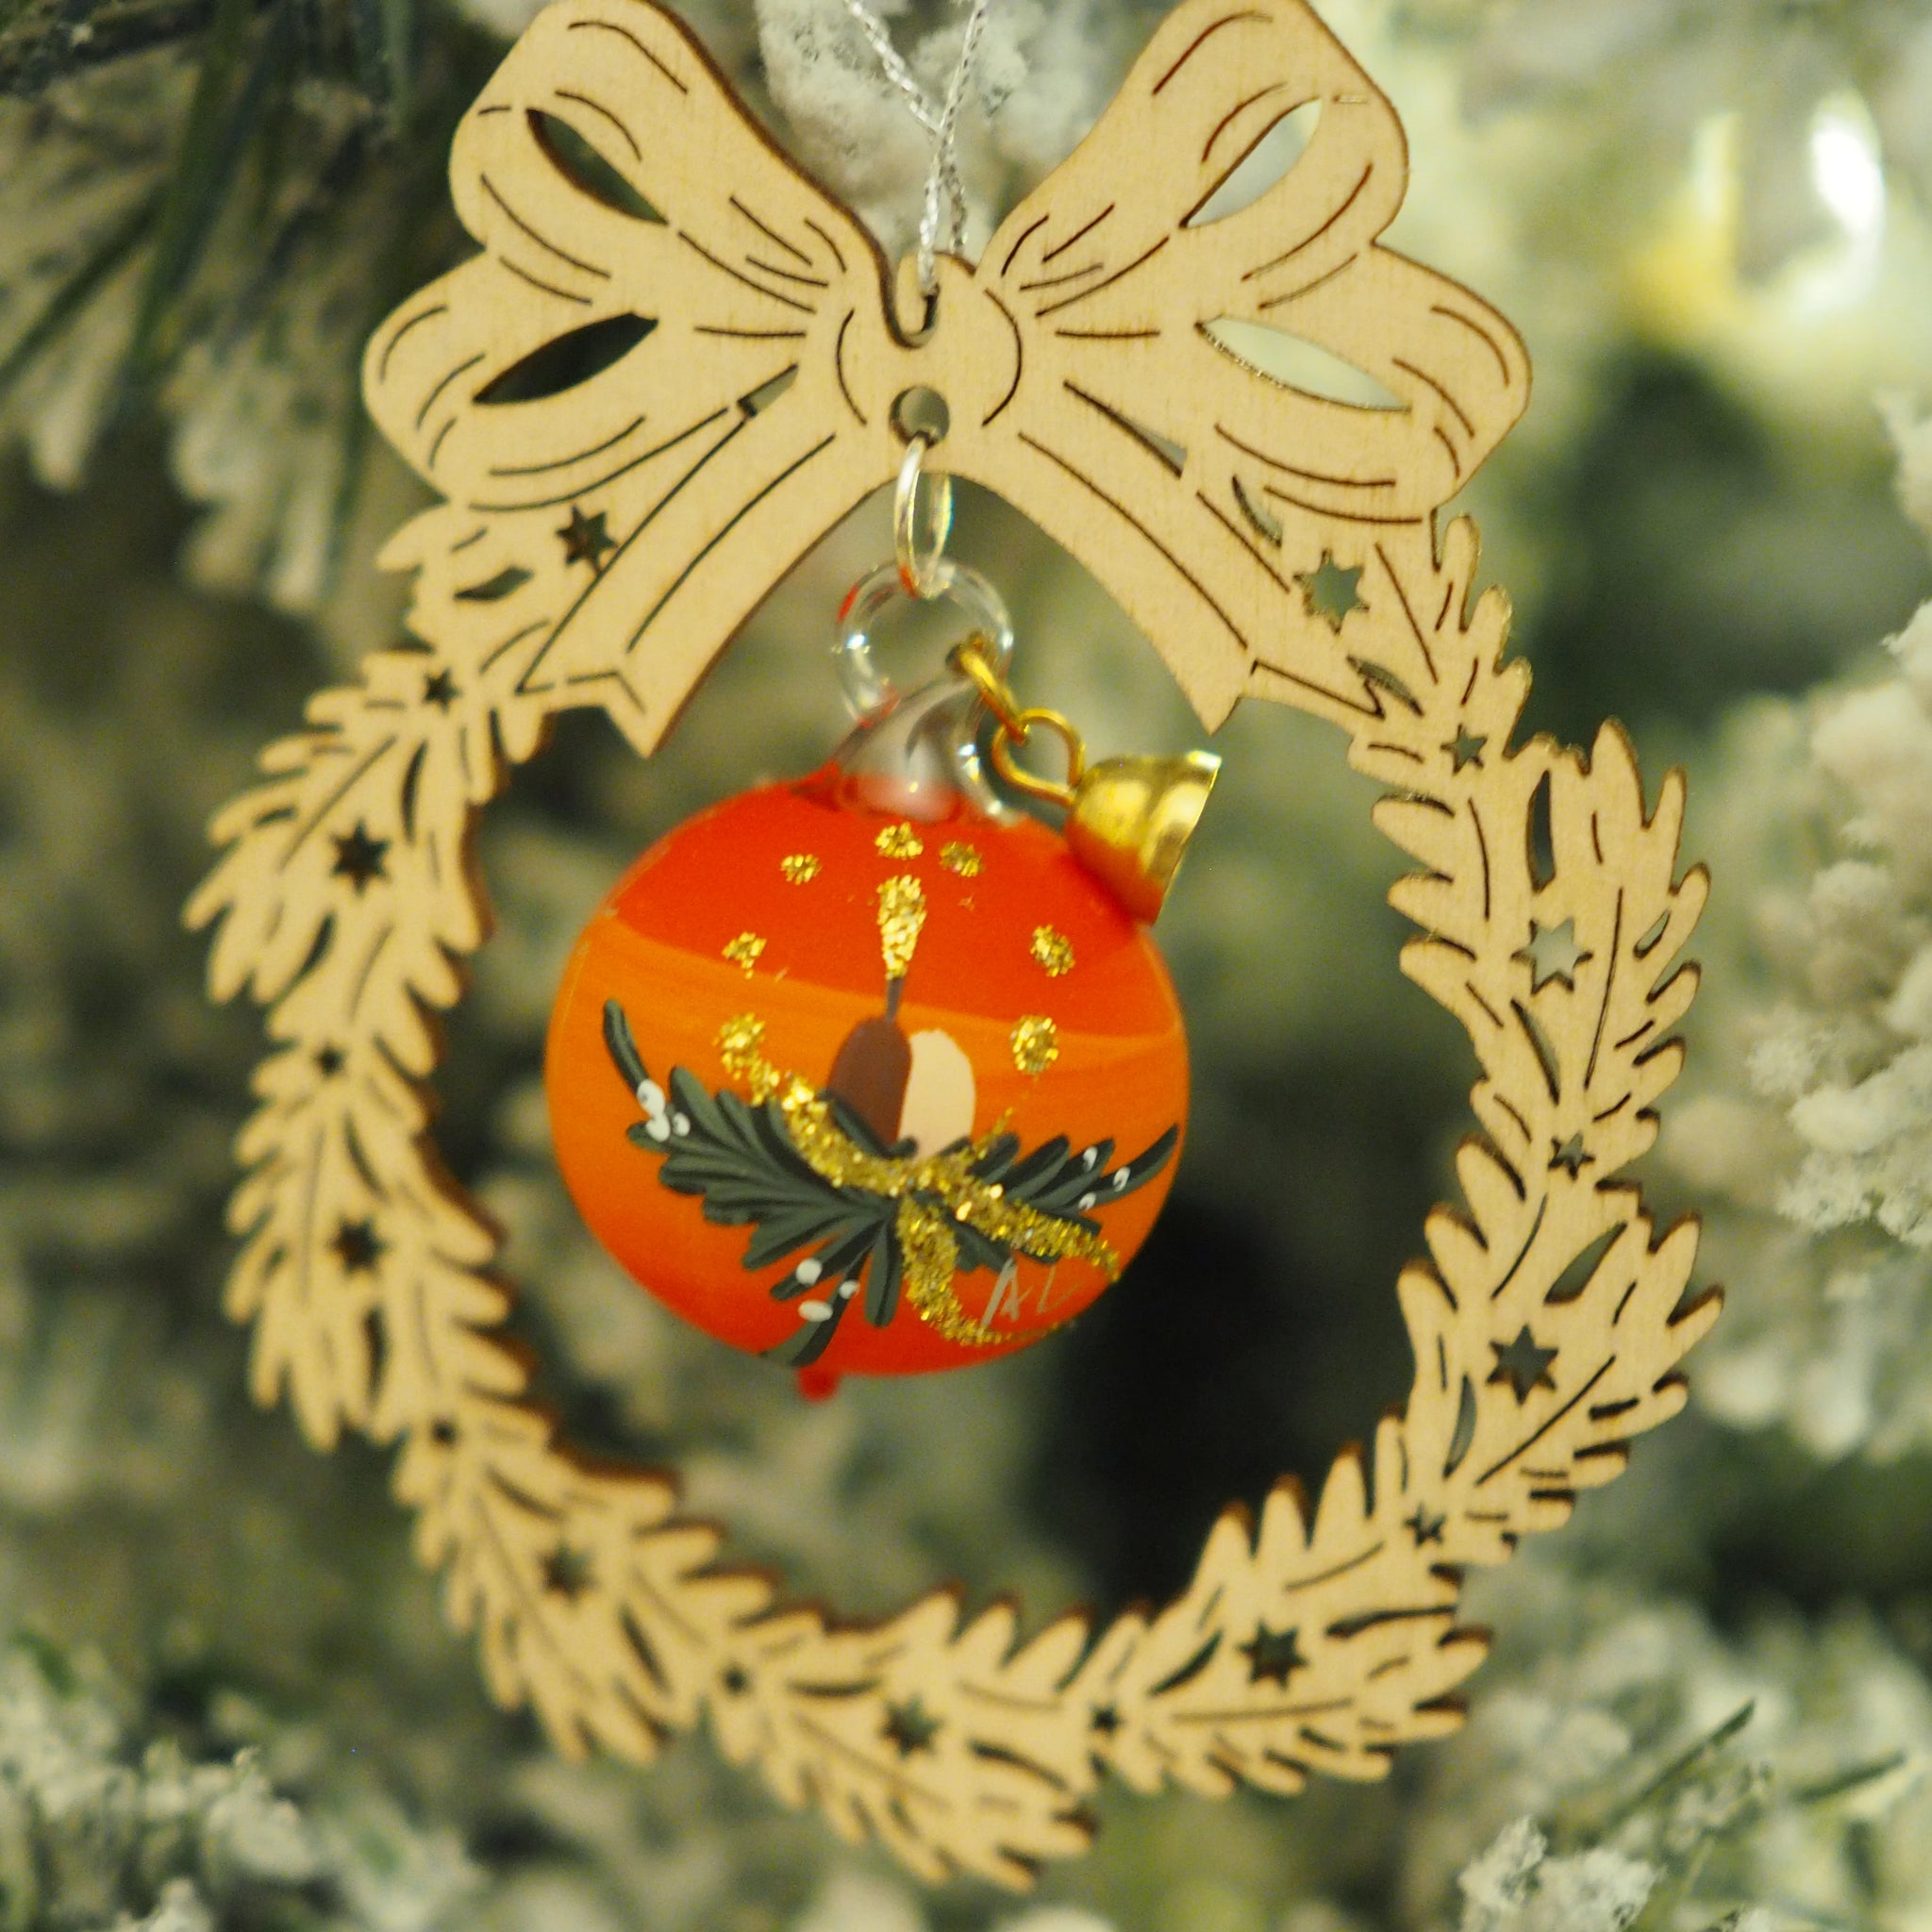 Elke's Wreath (Advent Candle) - Christmas tree decoration